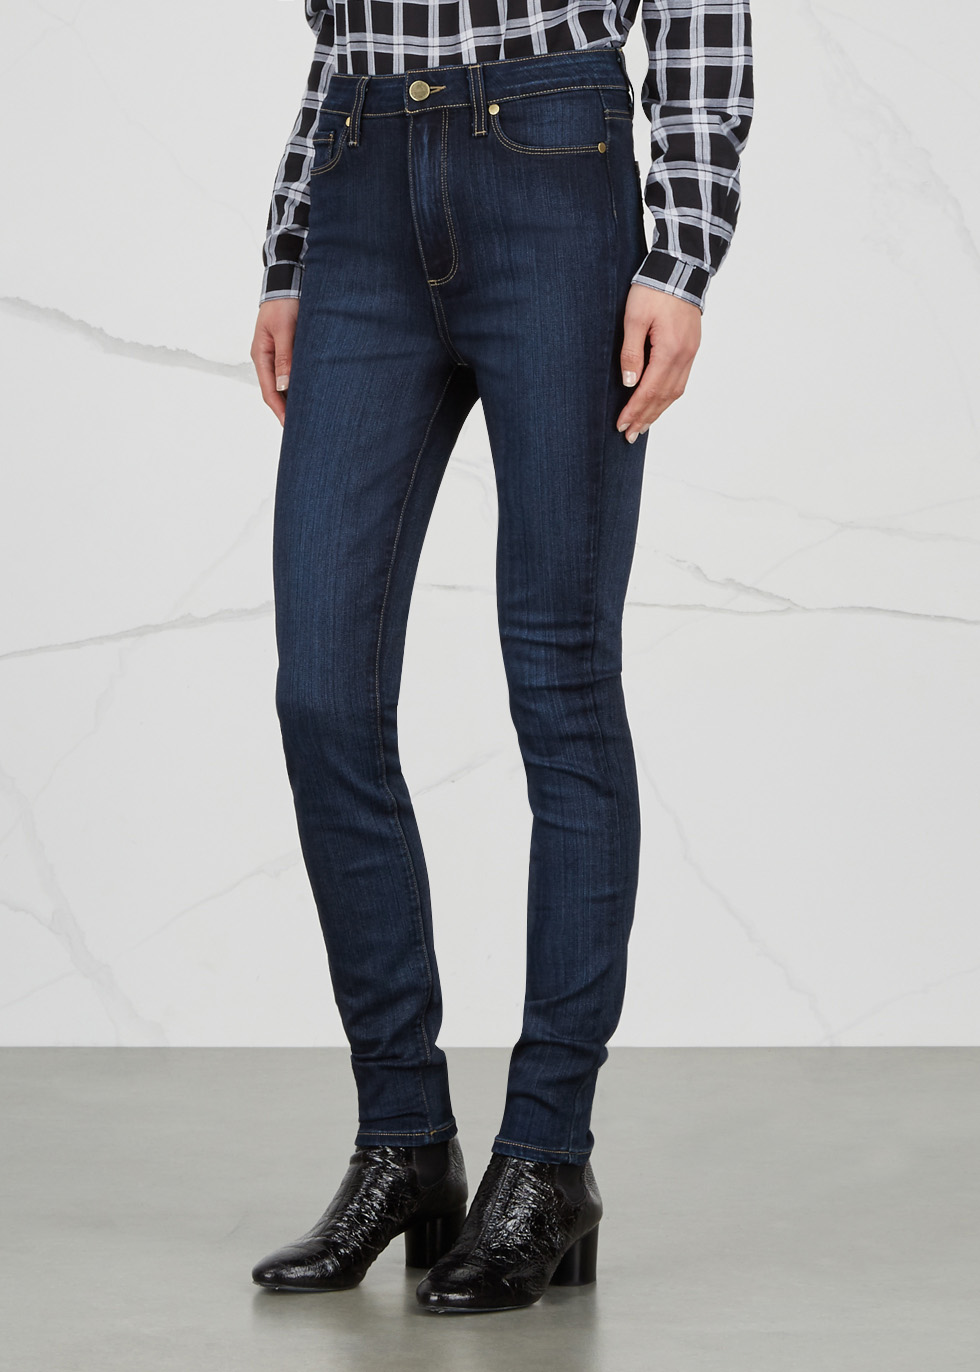 Margot blue skinny jeans - Paige